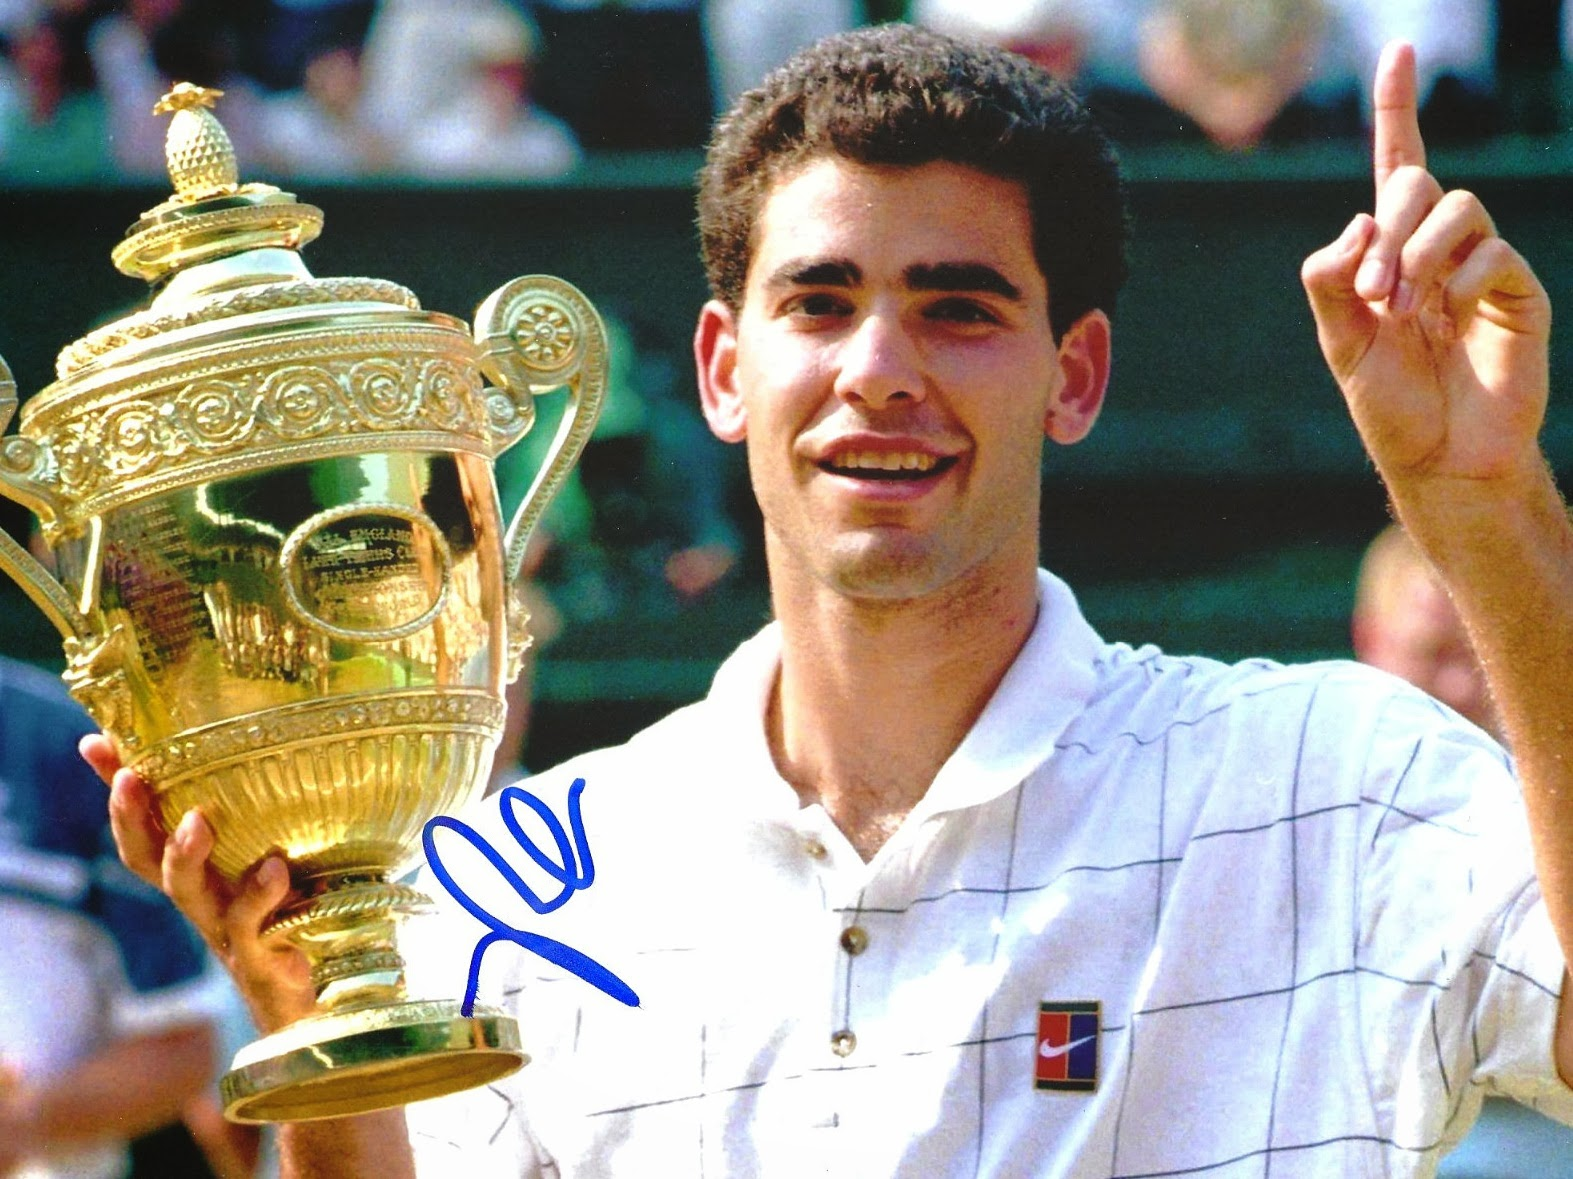 pete sampras essay Rafael nadal's coinciding trophy drought meant that this was the first time since 1999, when pete sampras and carlos moyá occupied the world number 1 and 2 spots, that neither of world's top two players had won a tournament prior to the start of the european clay court season.